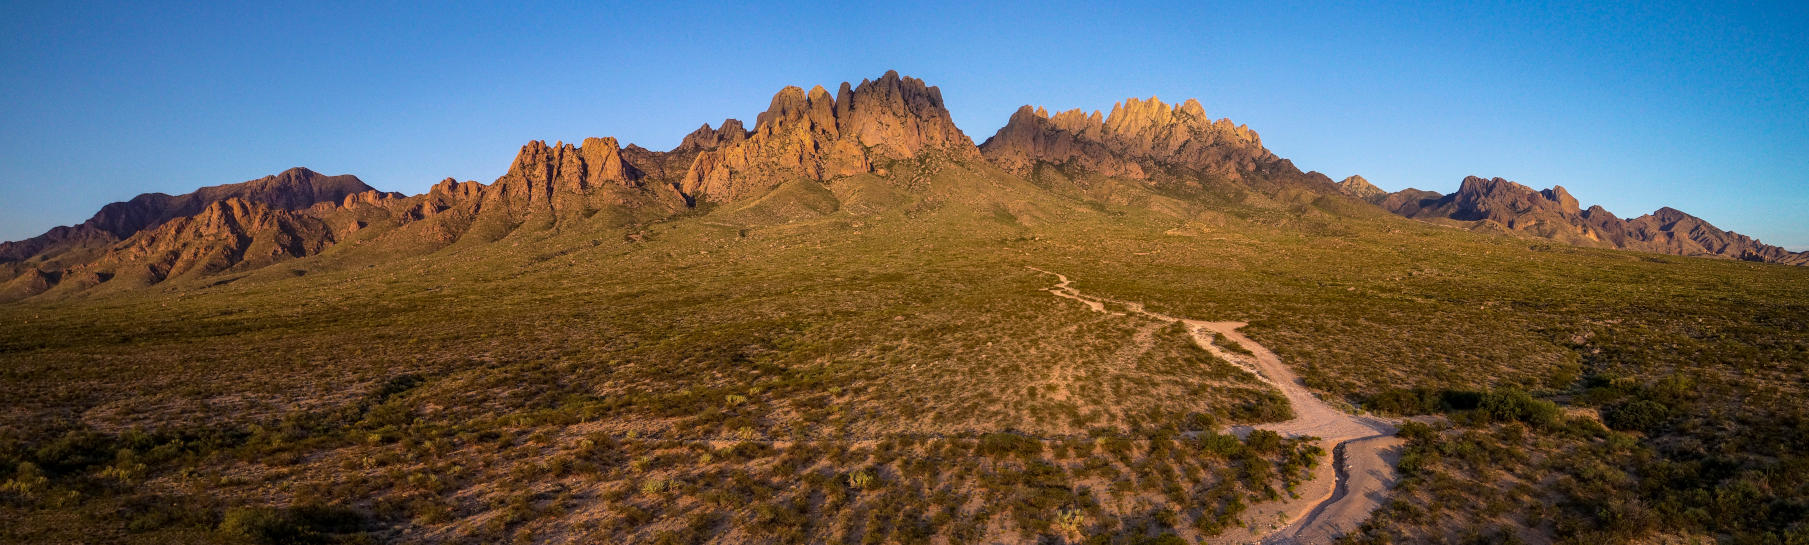 Organ Mountains Panorama